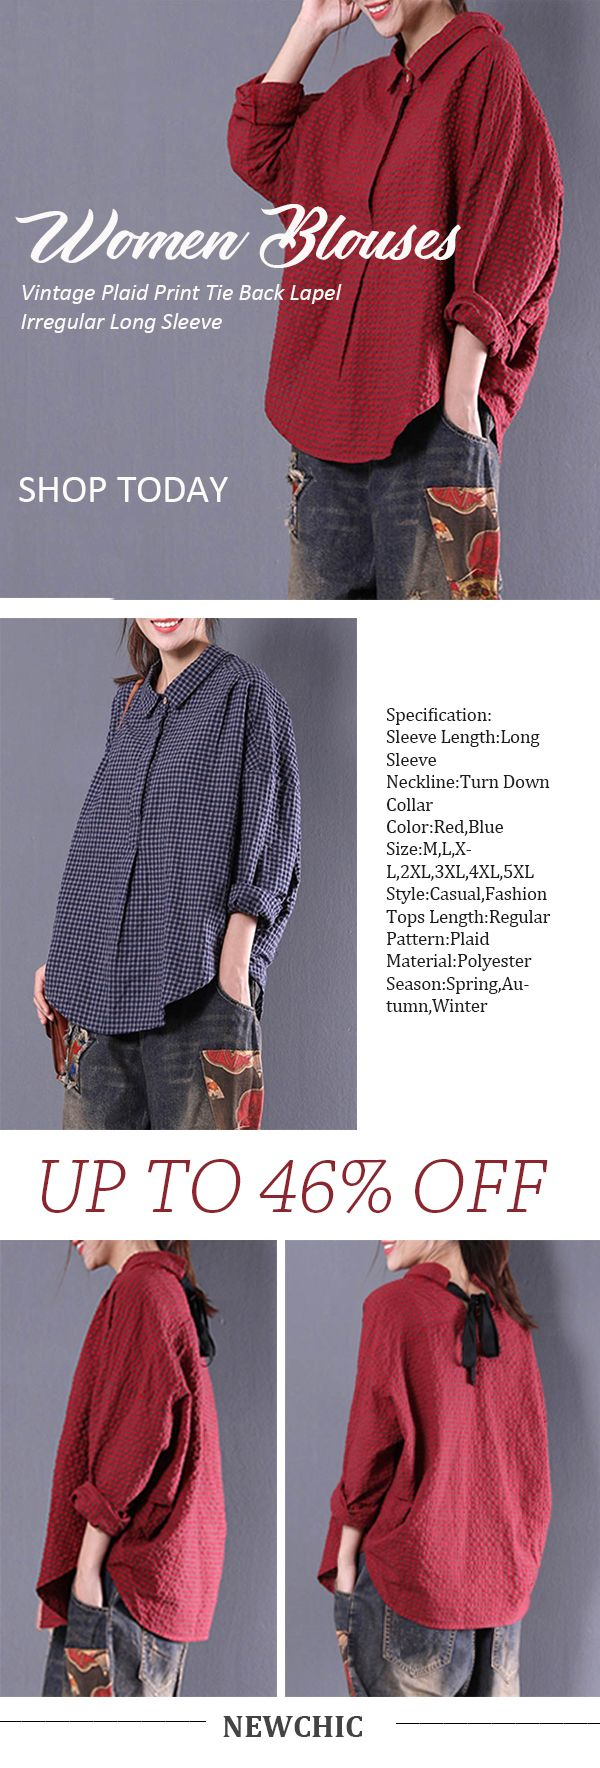 de80308a4f8a5  Newchic Online Shopping  46%OFF Women s Vintage Irregular Plaid Blouses  with Long Sleeve